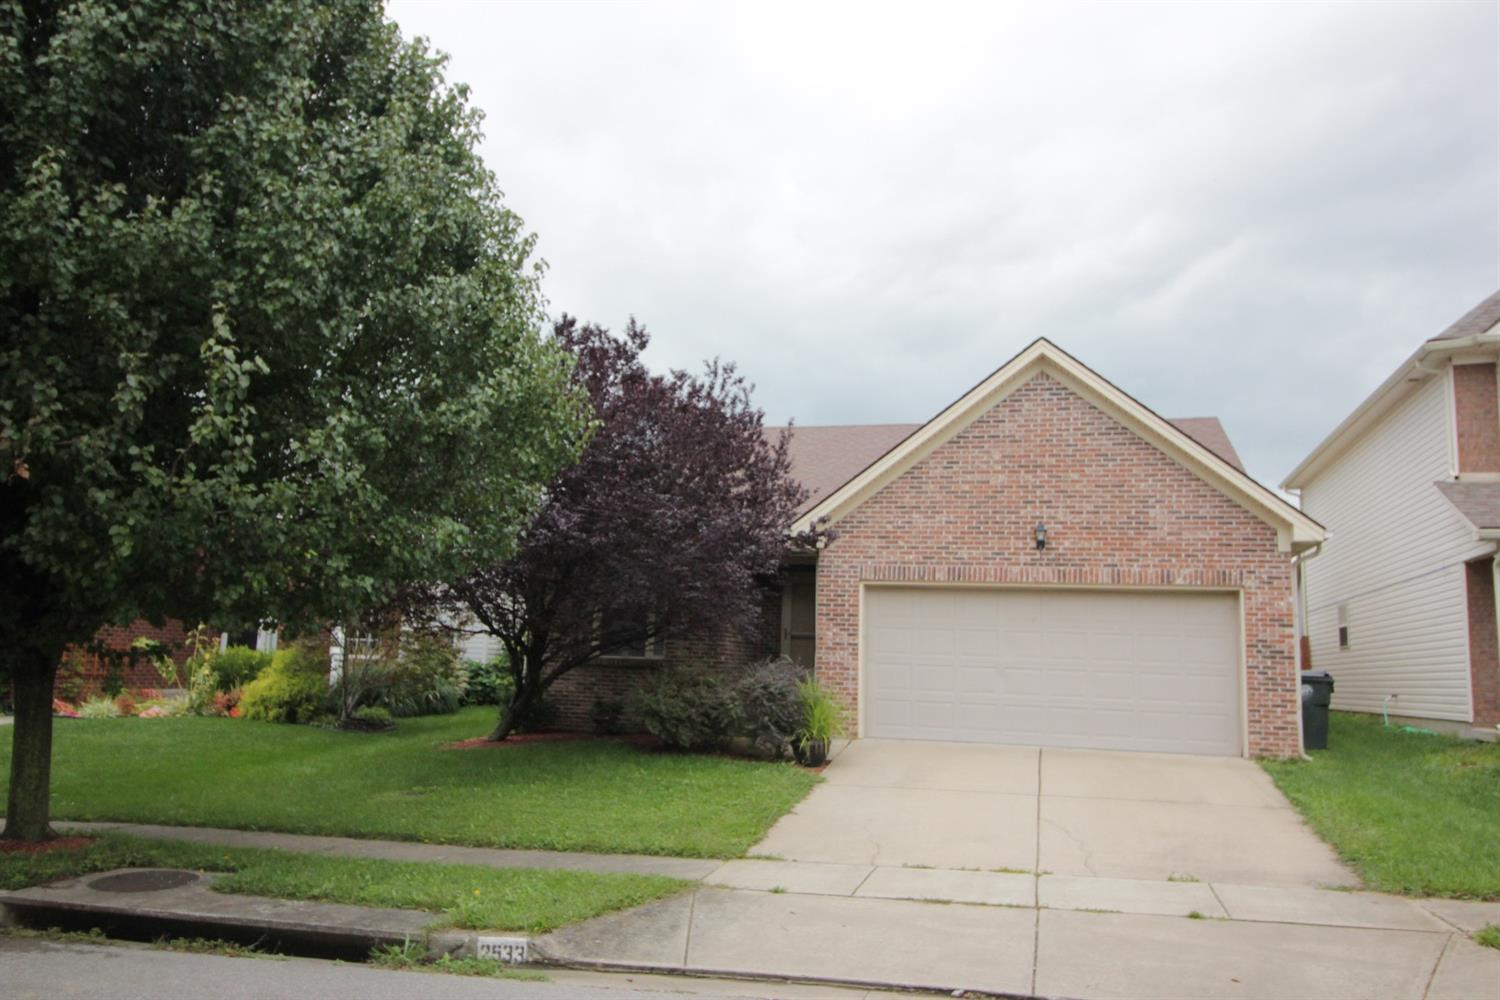 One%20level%20living%20in%20popular%20Coventry!%20Fenced%20in%20back%20yard,%20rear%20covered%20patio,%20vaulted%20ceiling%20in%20family%20room%20and%20master%20bedroom!%20Walk%20to%20new%20Covington%20Oak%20Elementary!%202%20miles%20to%20I-75/I-64,%204.5%20miles%20to%20downtown%20Lexington!%20Easy%20Legacy%20Trail%20access%20also!%20Investors:%20Current%20tenant%20in%20place.%20%20Seller%20is%20a%20licensed%20real%20estate%20broker%20in%20Kentucky.